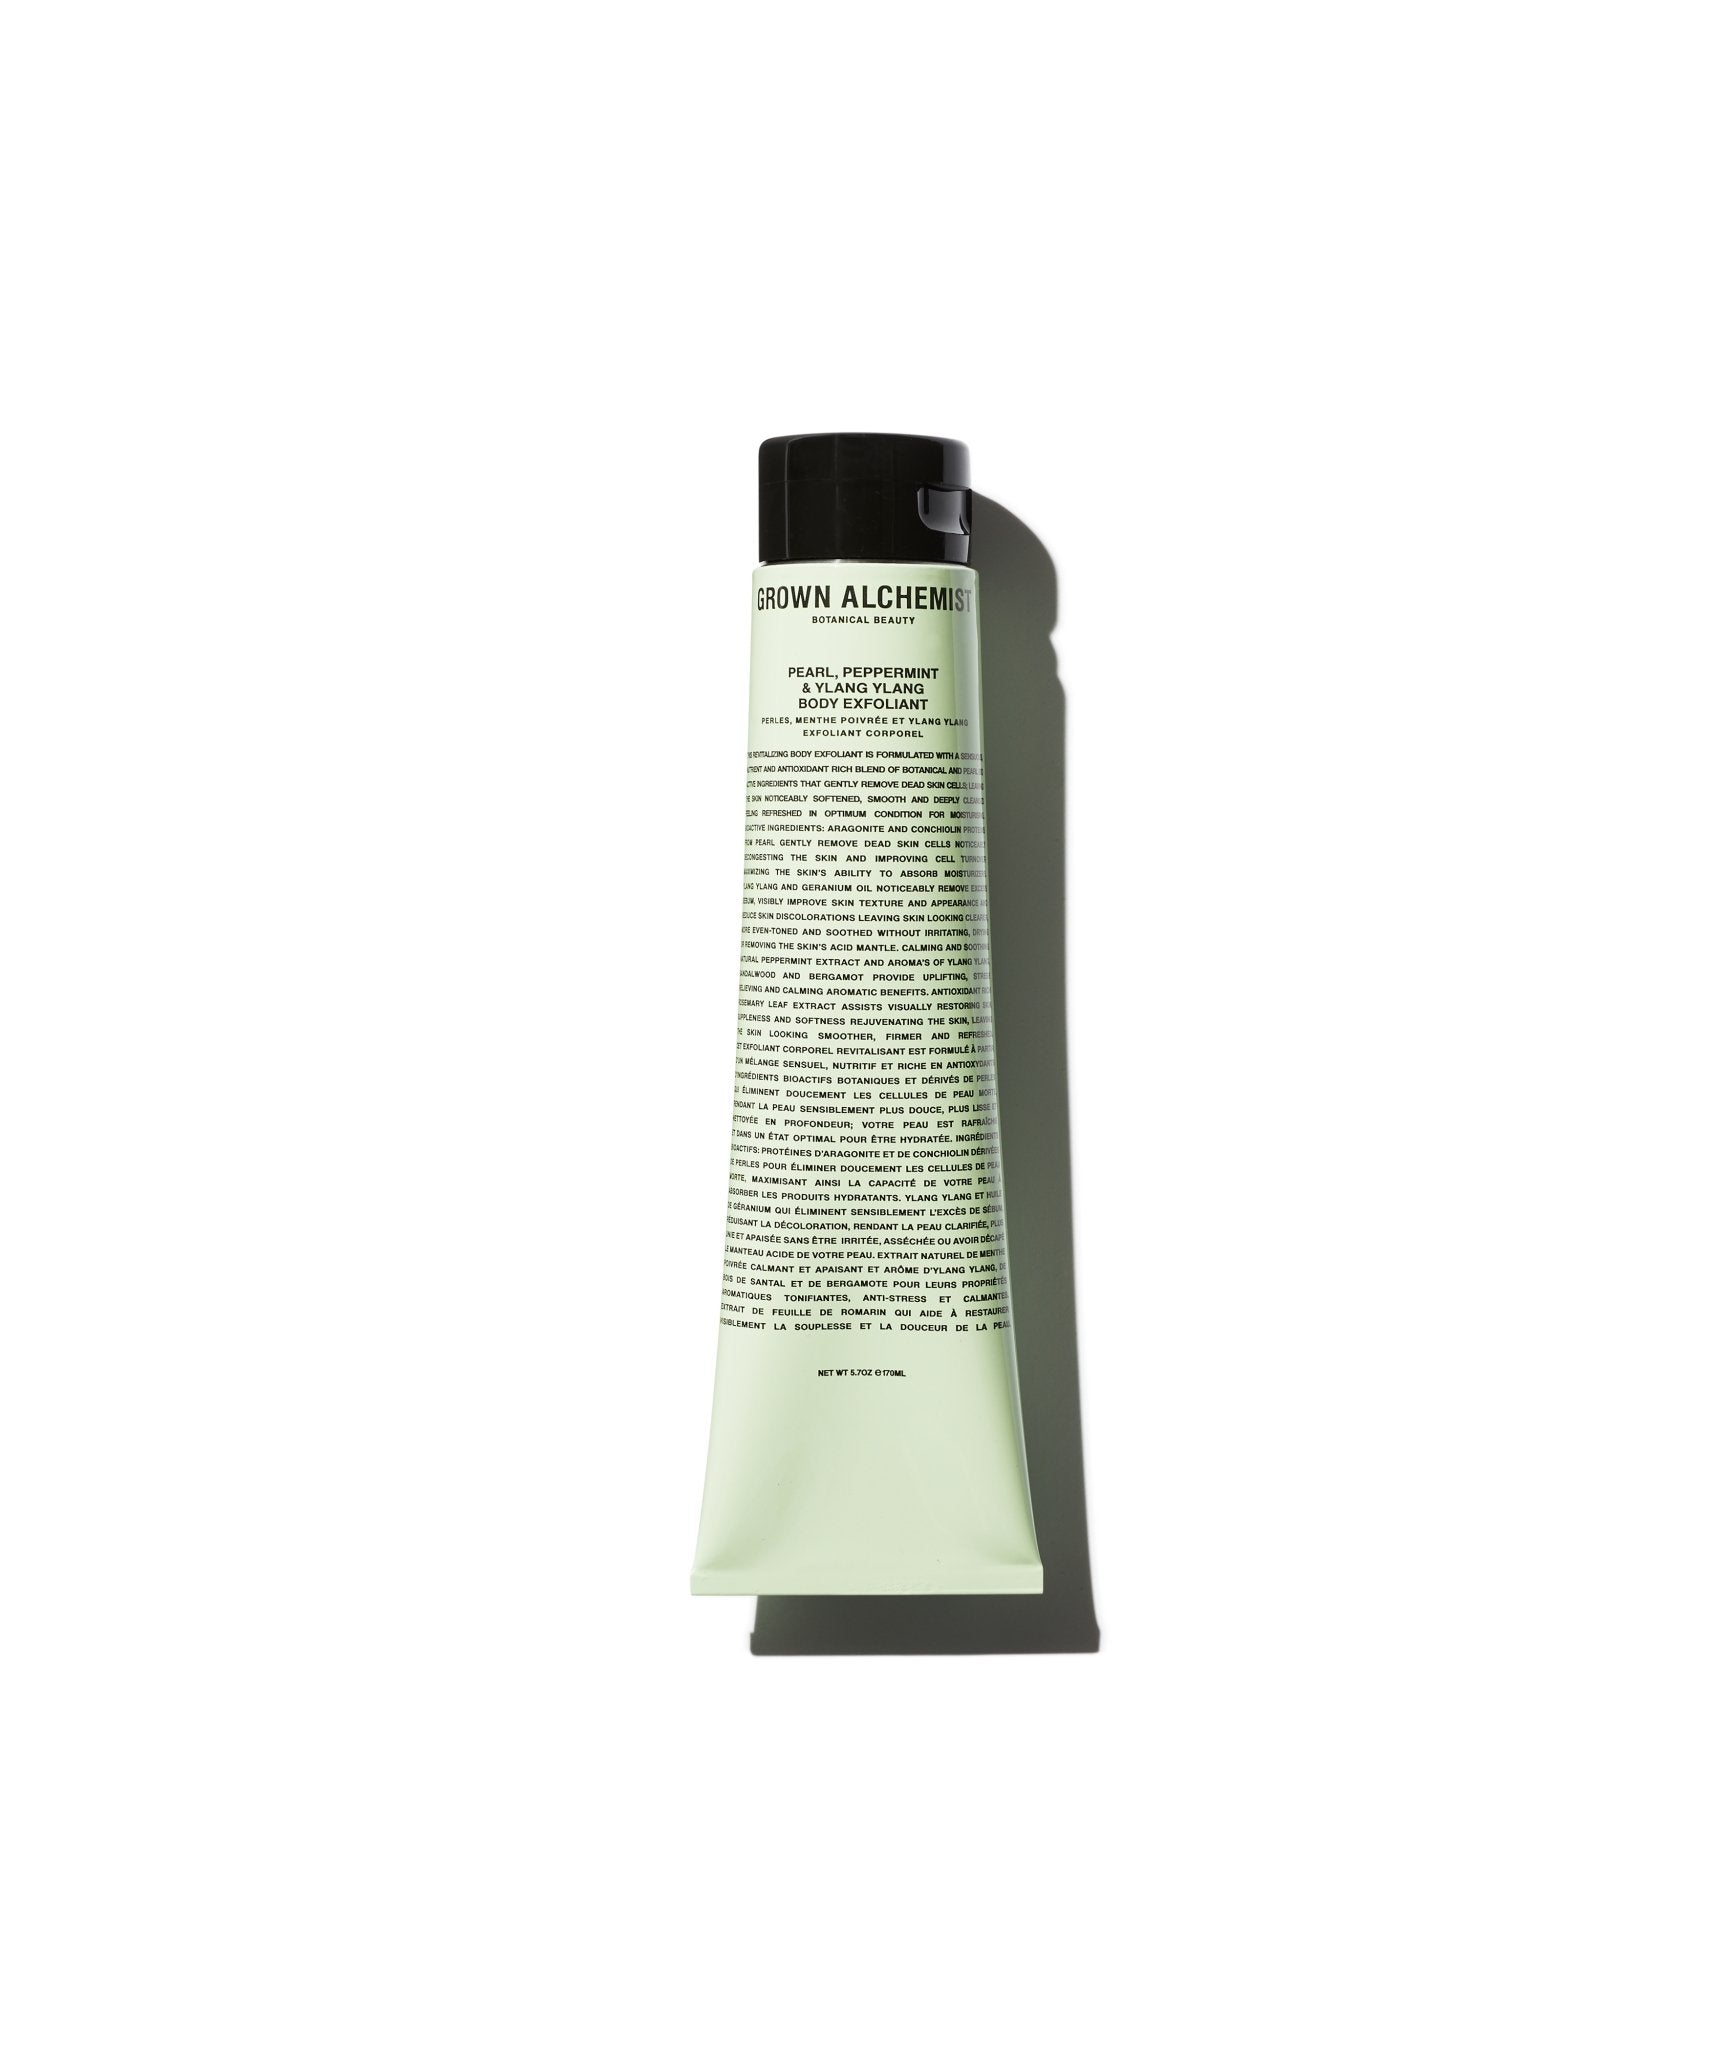 Purifying Body Exfoliant by Grown Alchemist